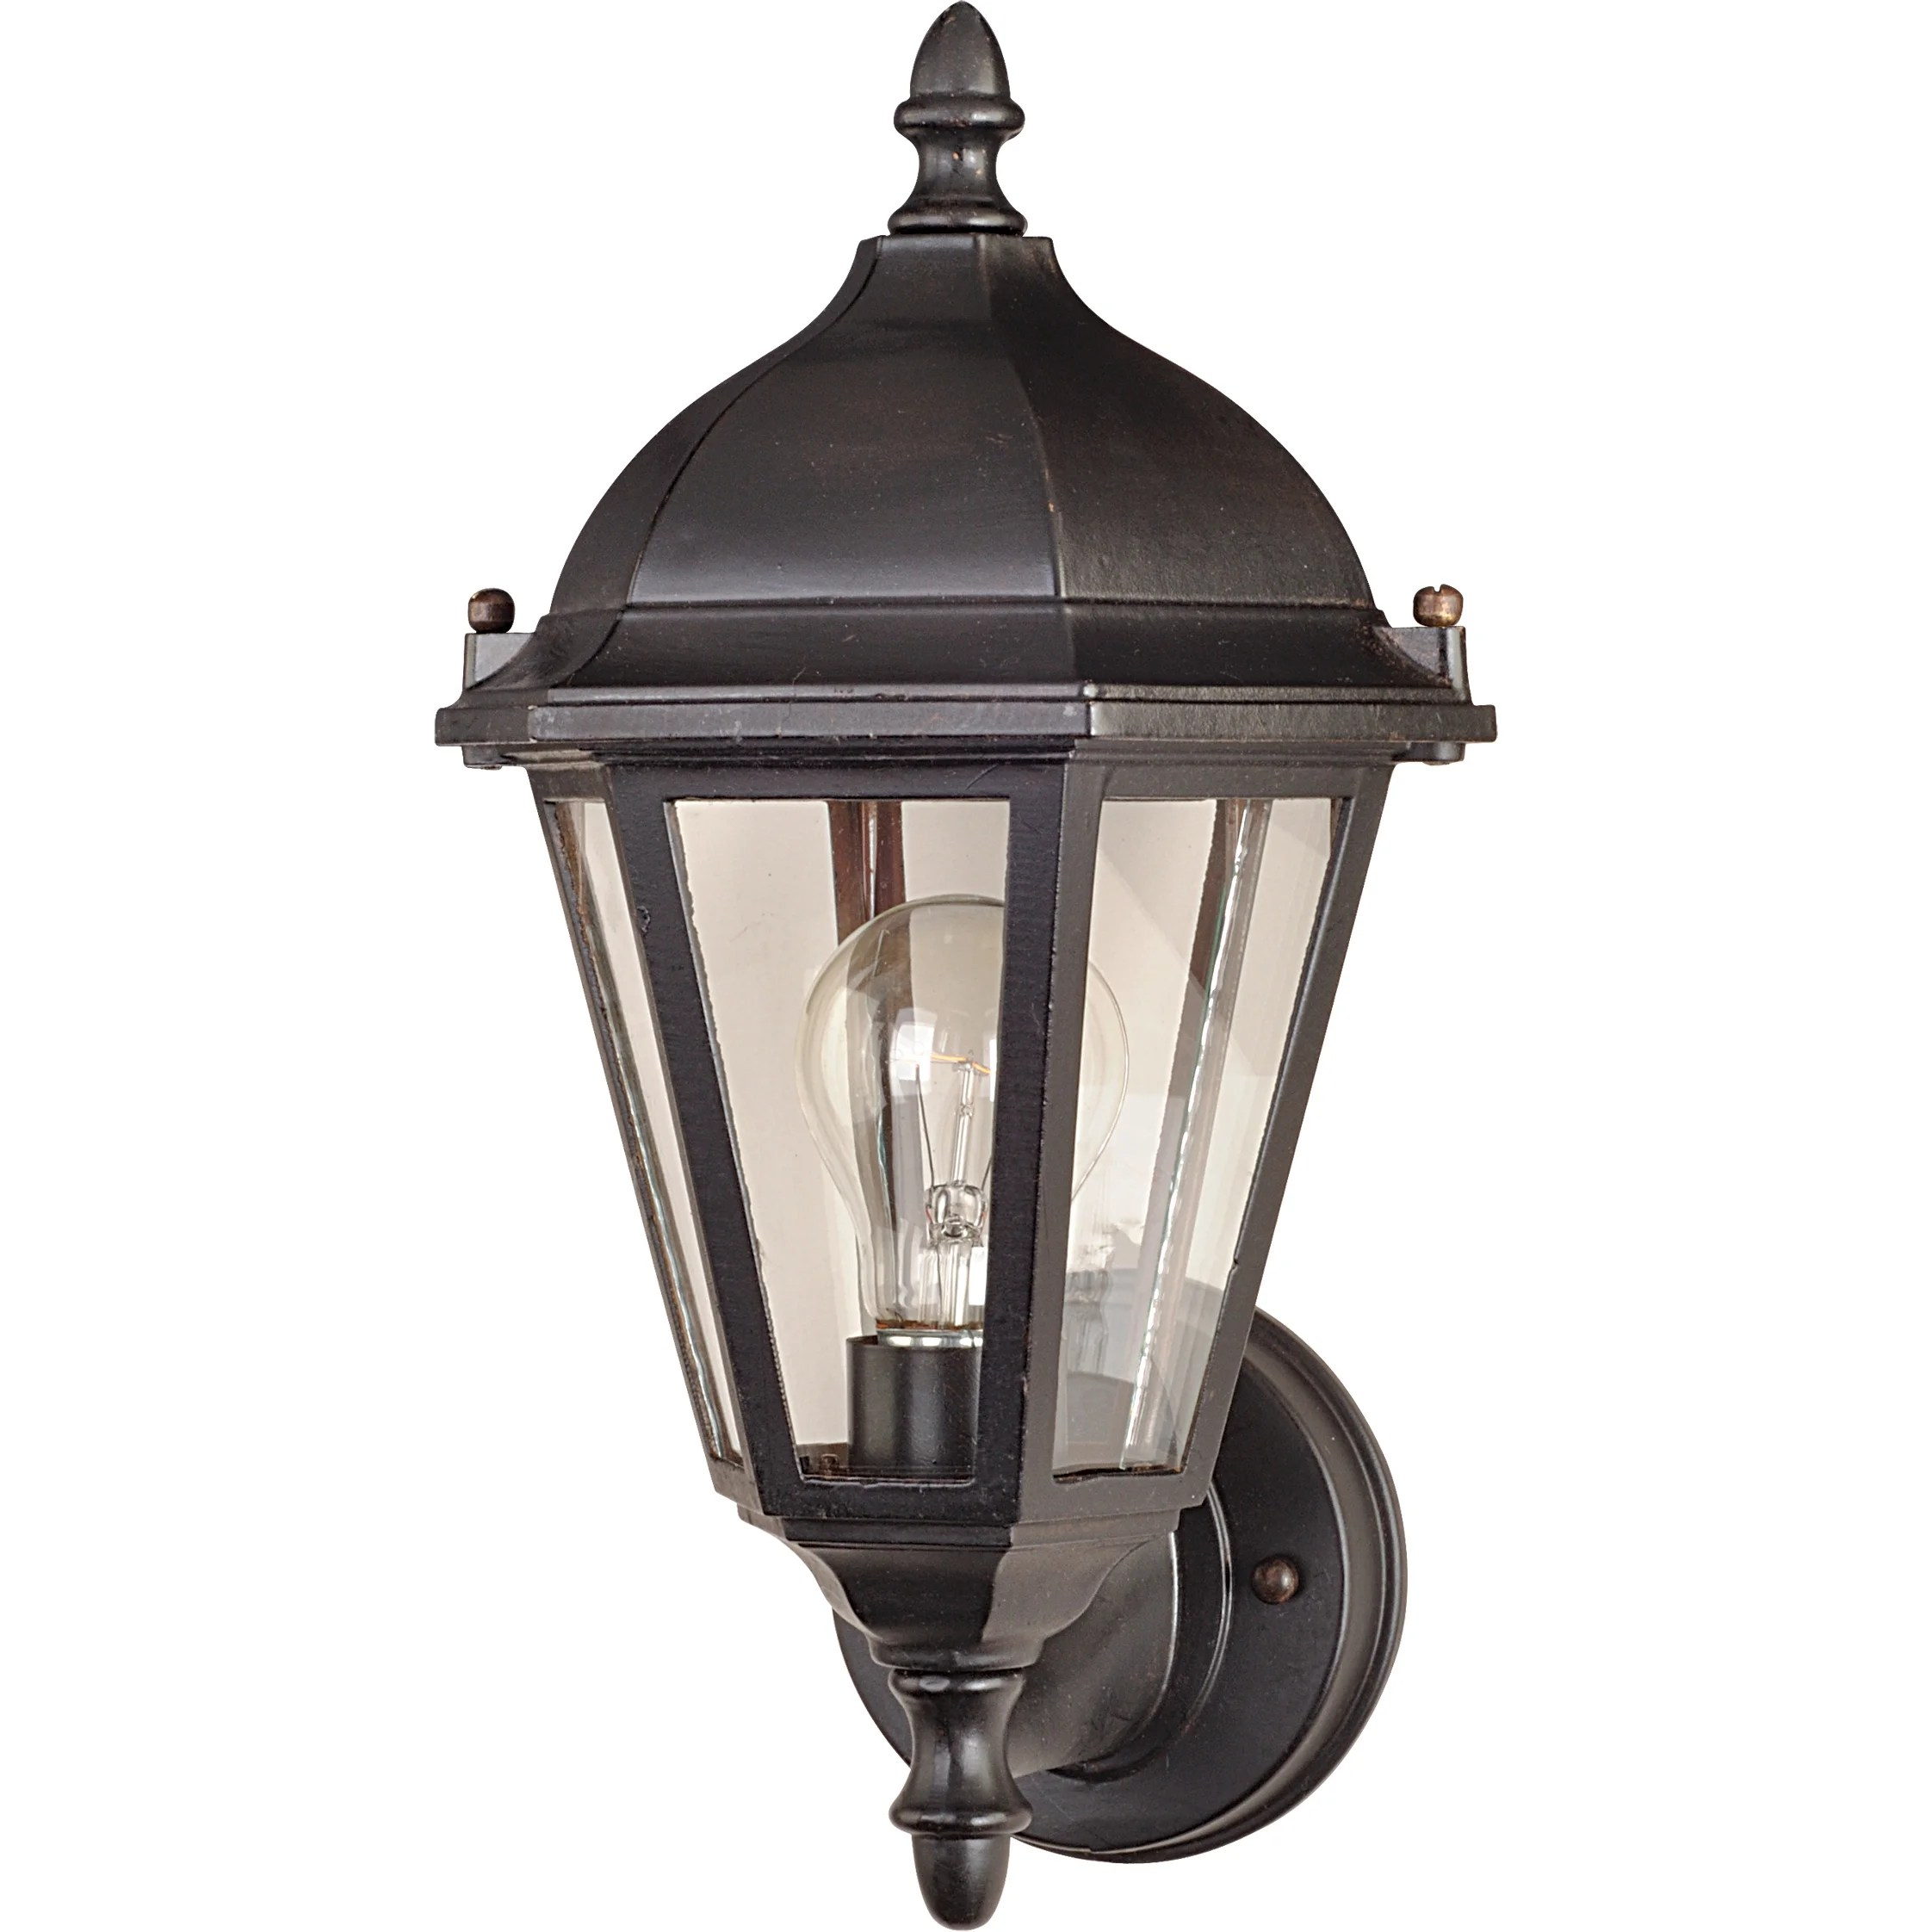 Maxim Lighting Westlake 1 Light Outdoor Sconce & Reviews ... on Sconce Outdoor Lighting id=35705